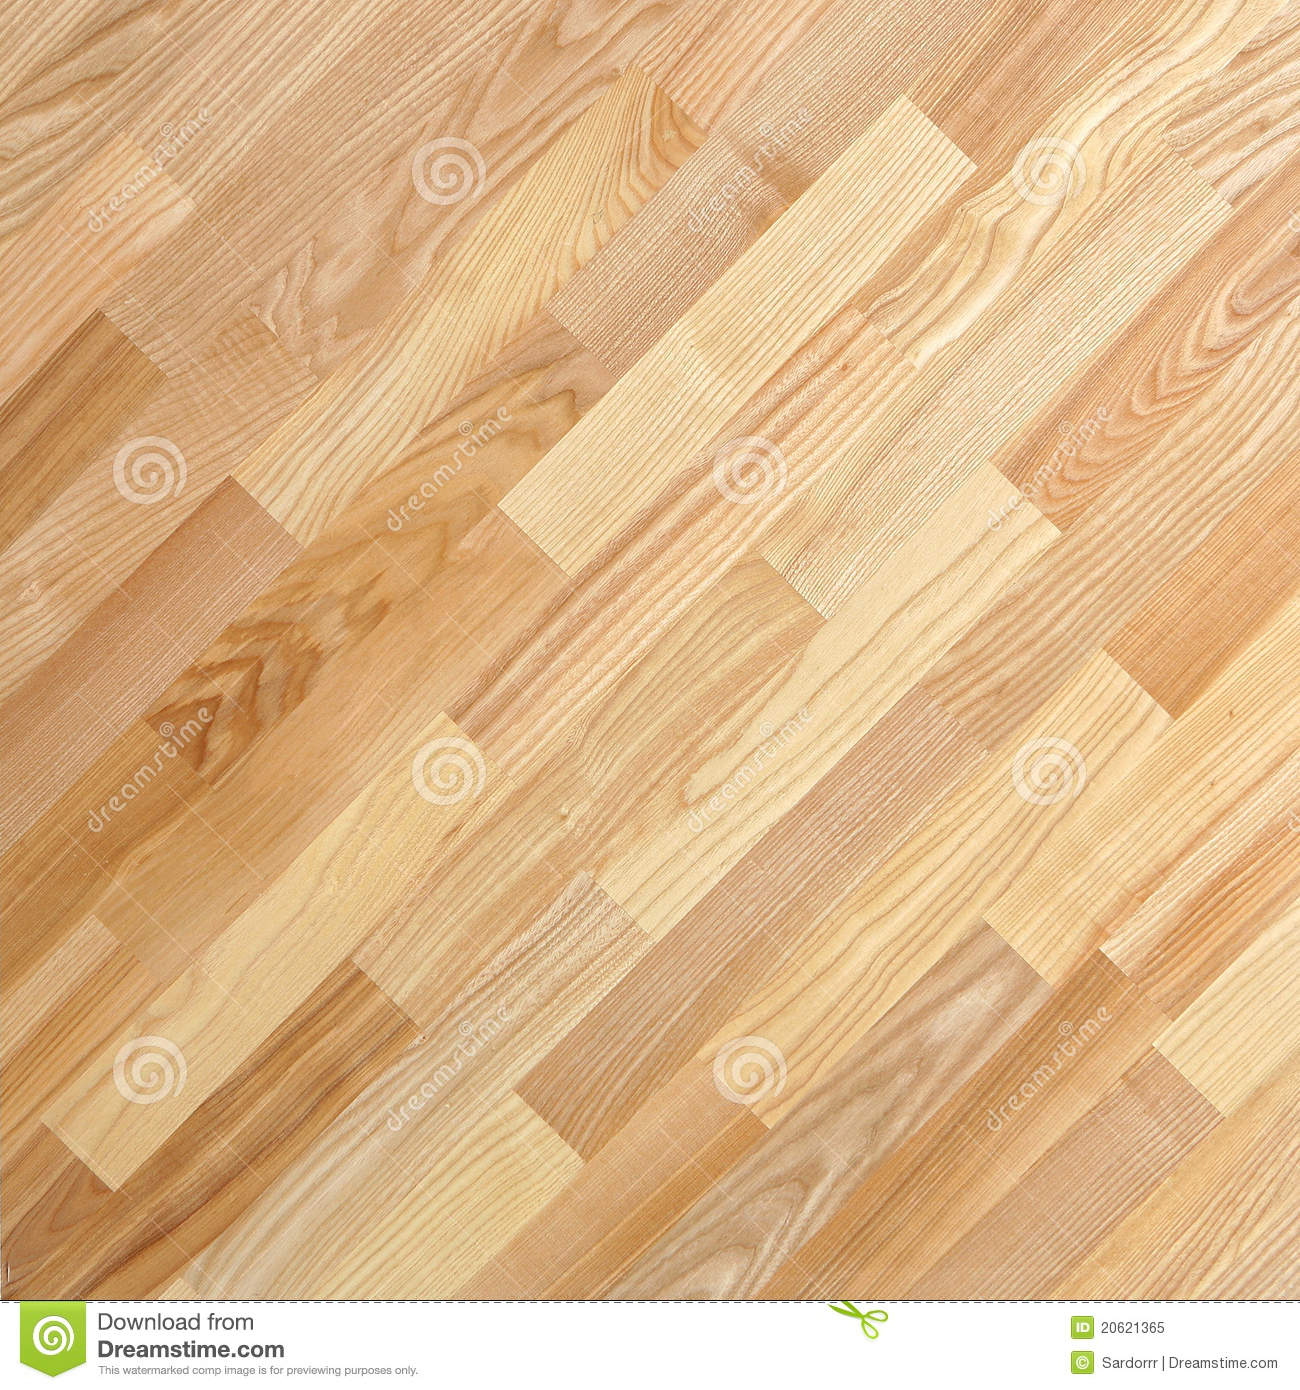 wooden surface floor background royalty free stock photo image 20621365. Black Bedroom Furniture Sets. Home Design Ideas